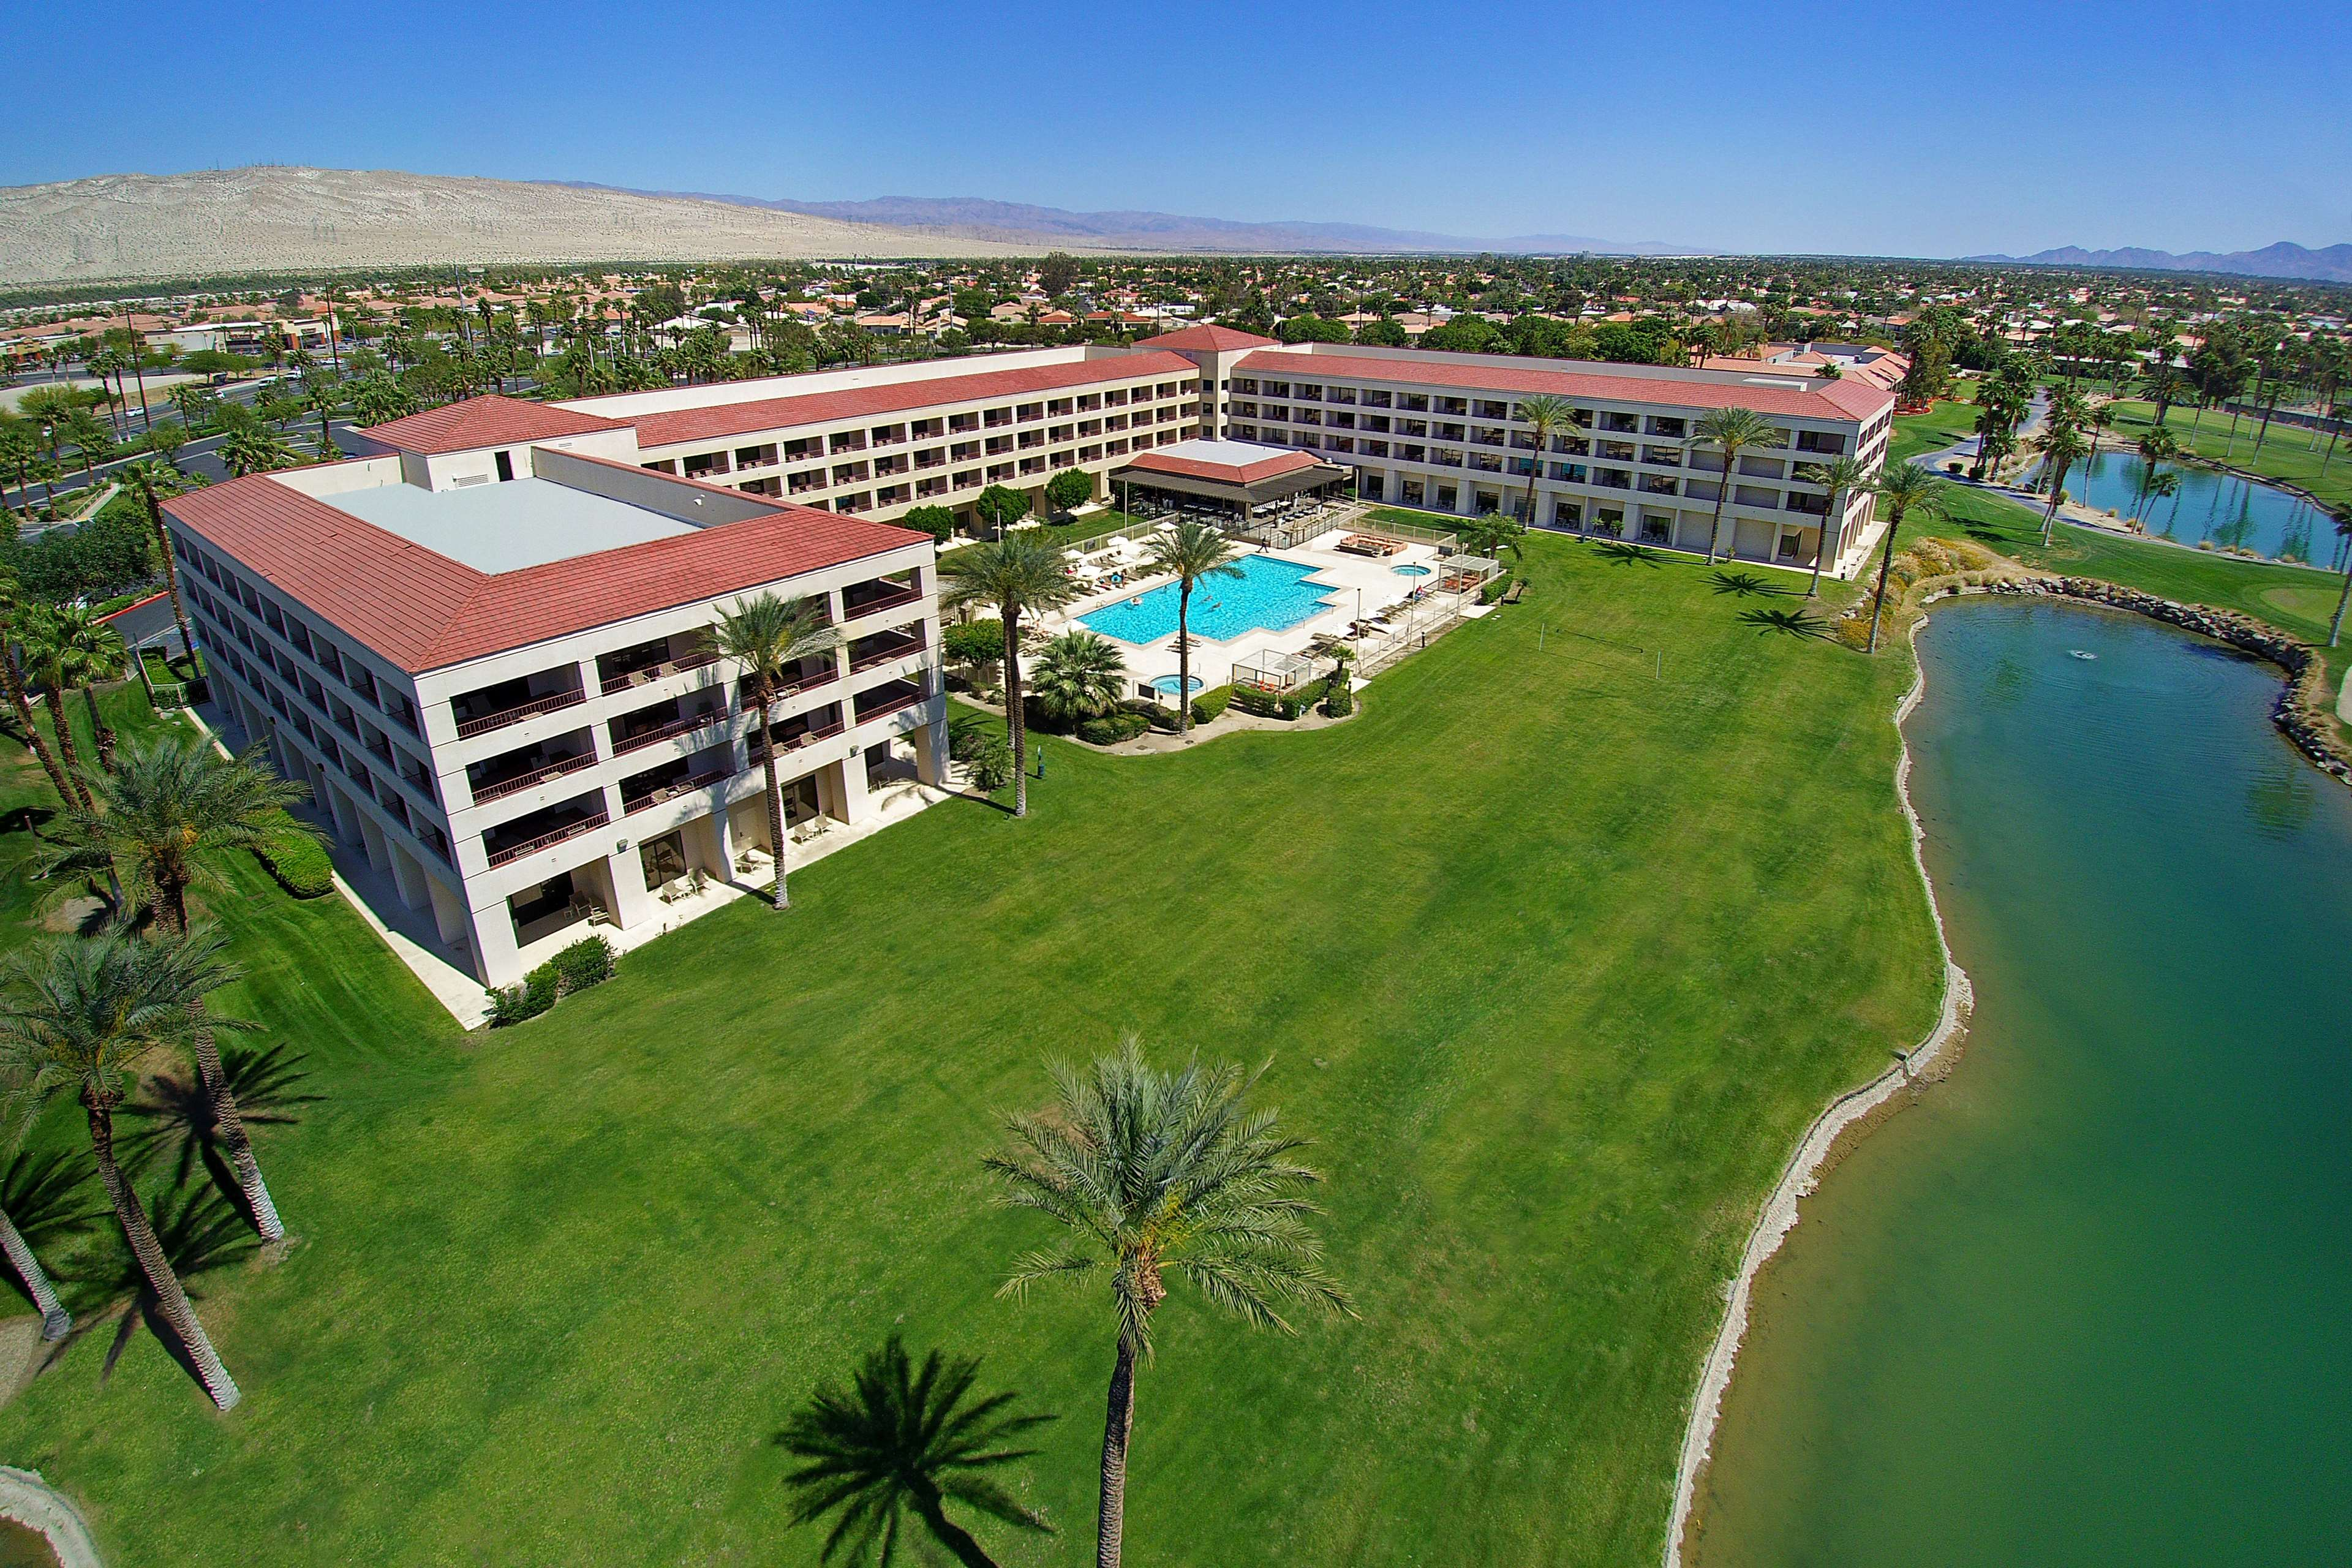 DoubleTree by Hilton Hotel Golf Resort Palm Springs image 0